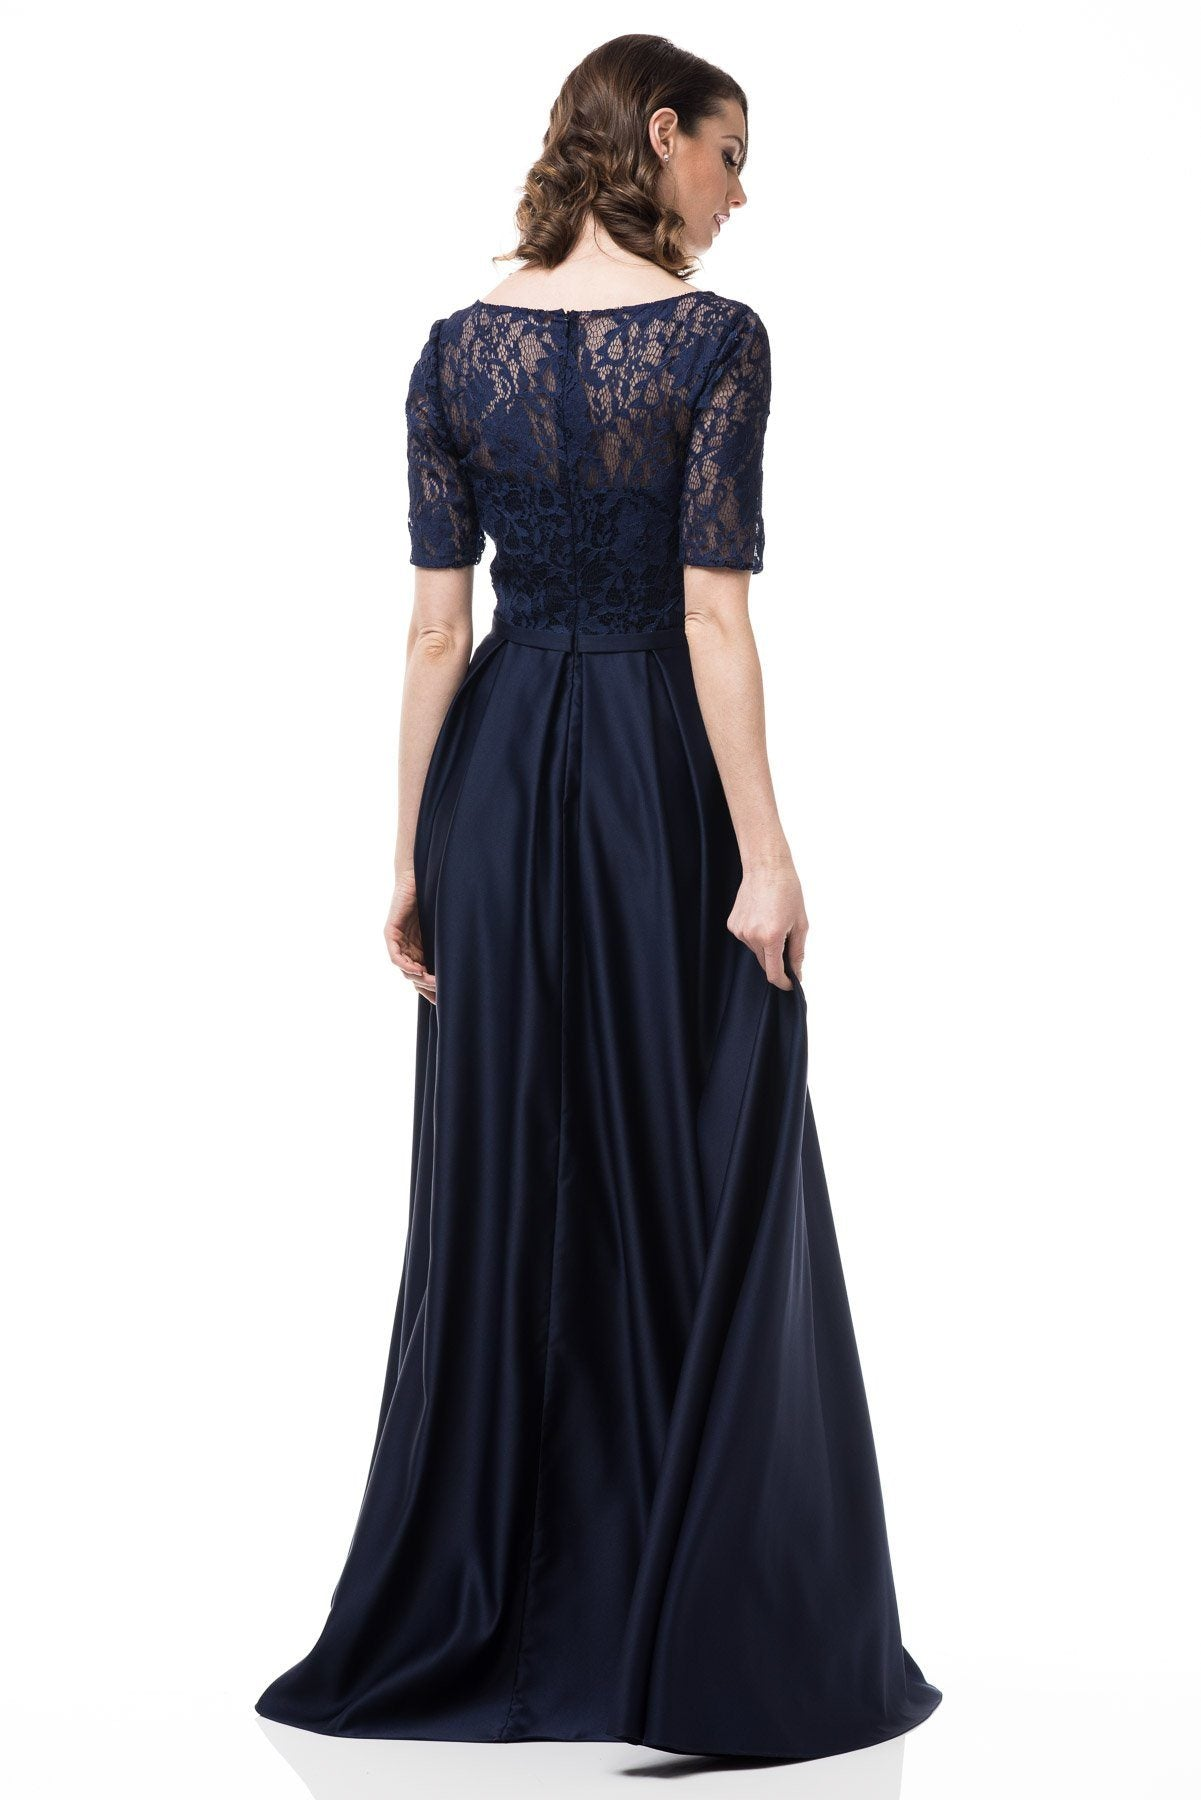 Plus size evening gown with sleeves #GP17137 – Simply Fab Dress